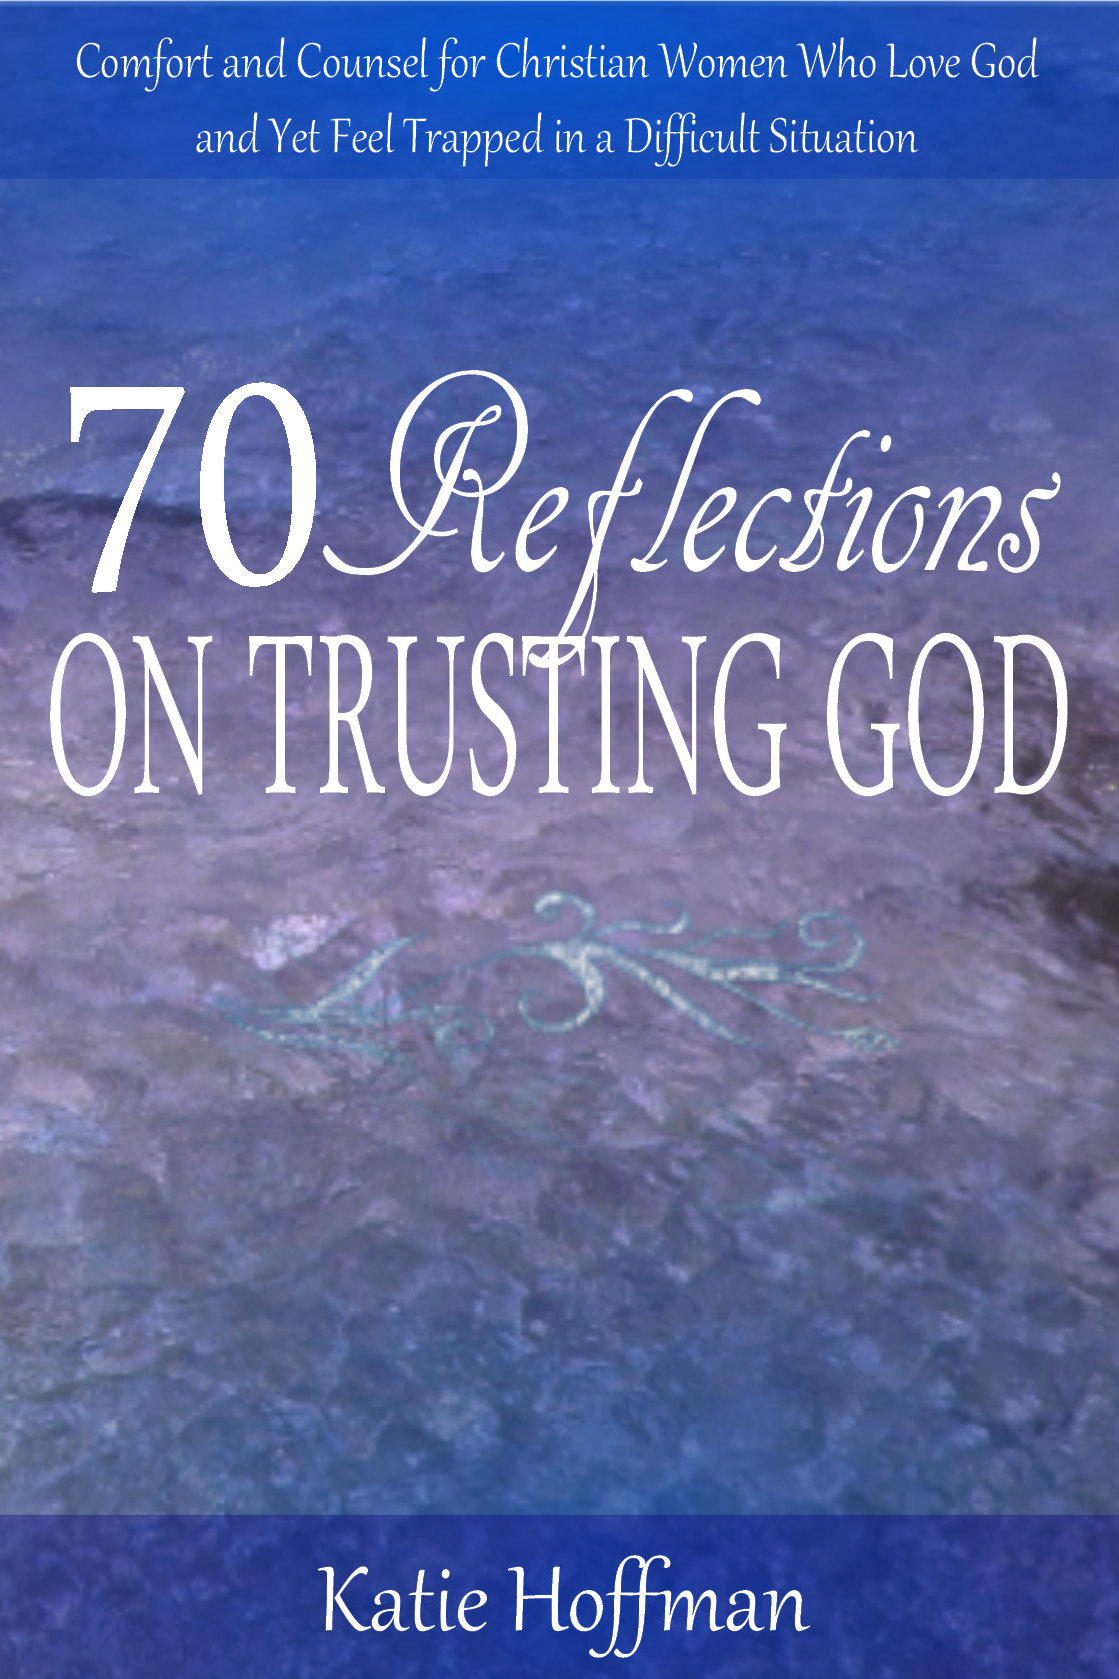 70 Reflections on Trusting God Front Cover jpeg